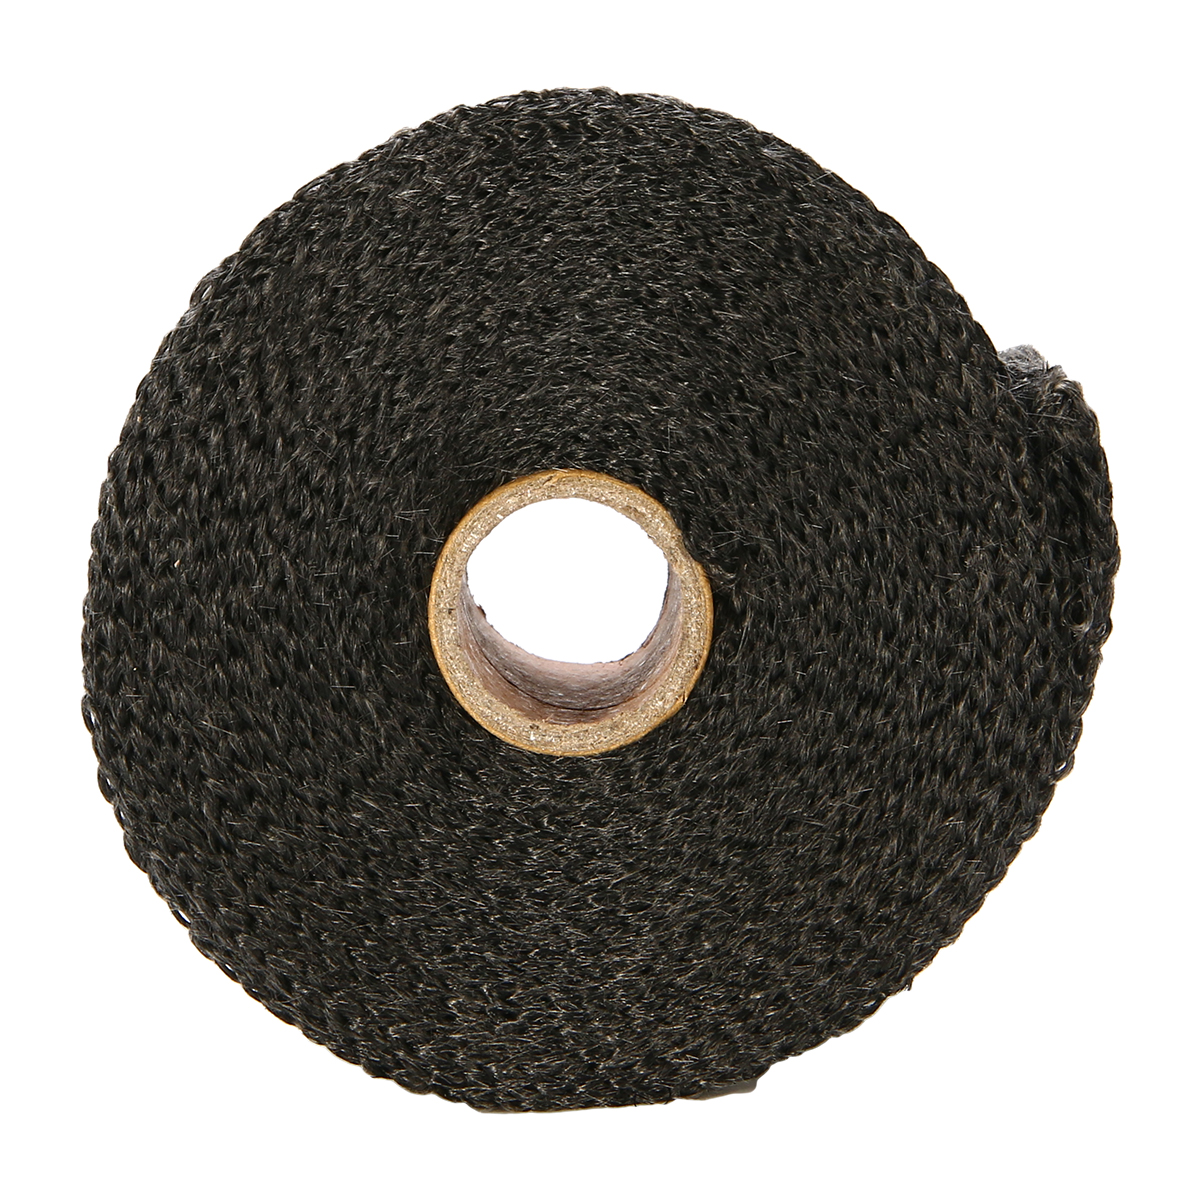 1pcs Black 5CM*5M Exhaust Header Heat Wrap With 6pcs Stainless Cable Ties Car Accessories High Quality